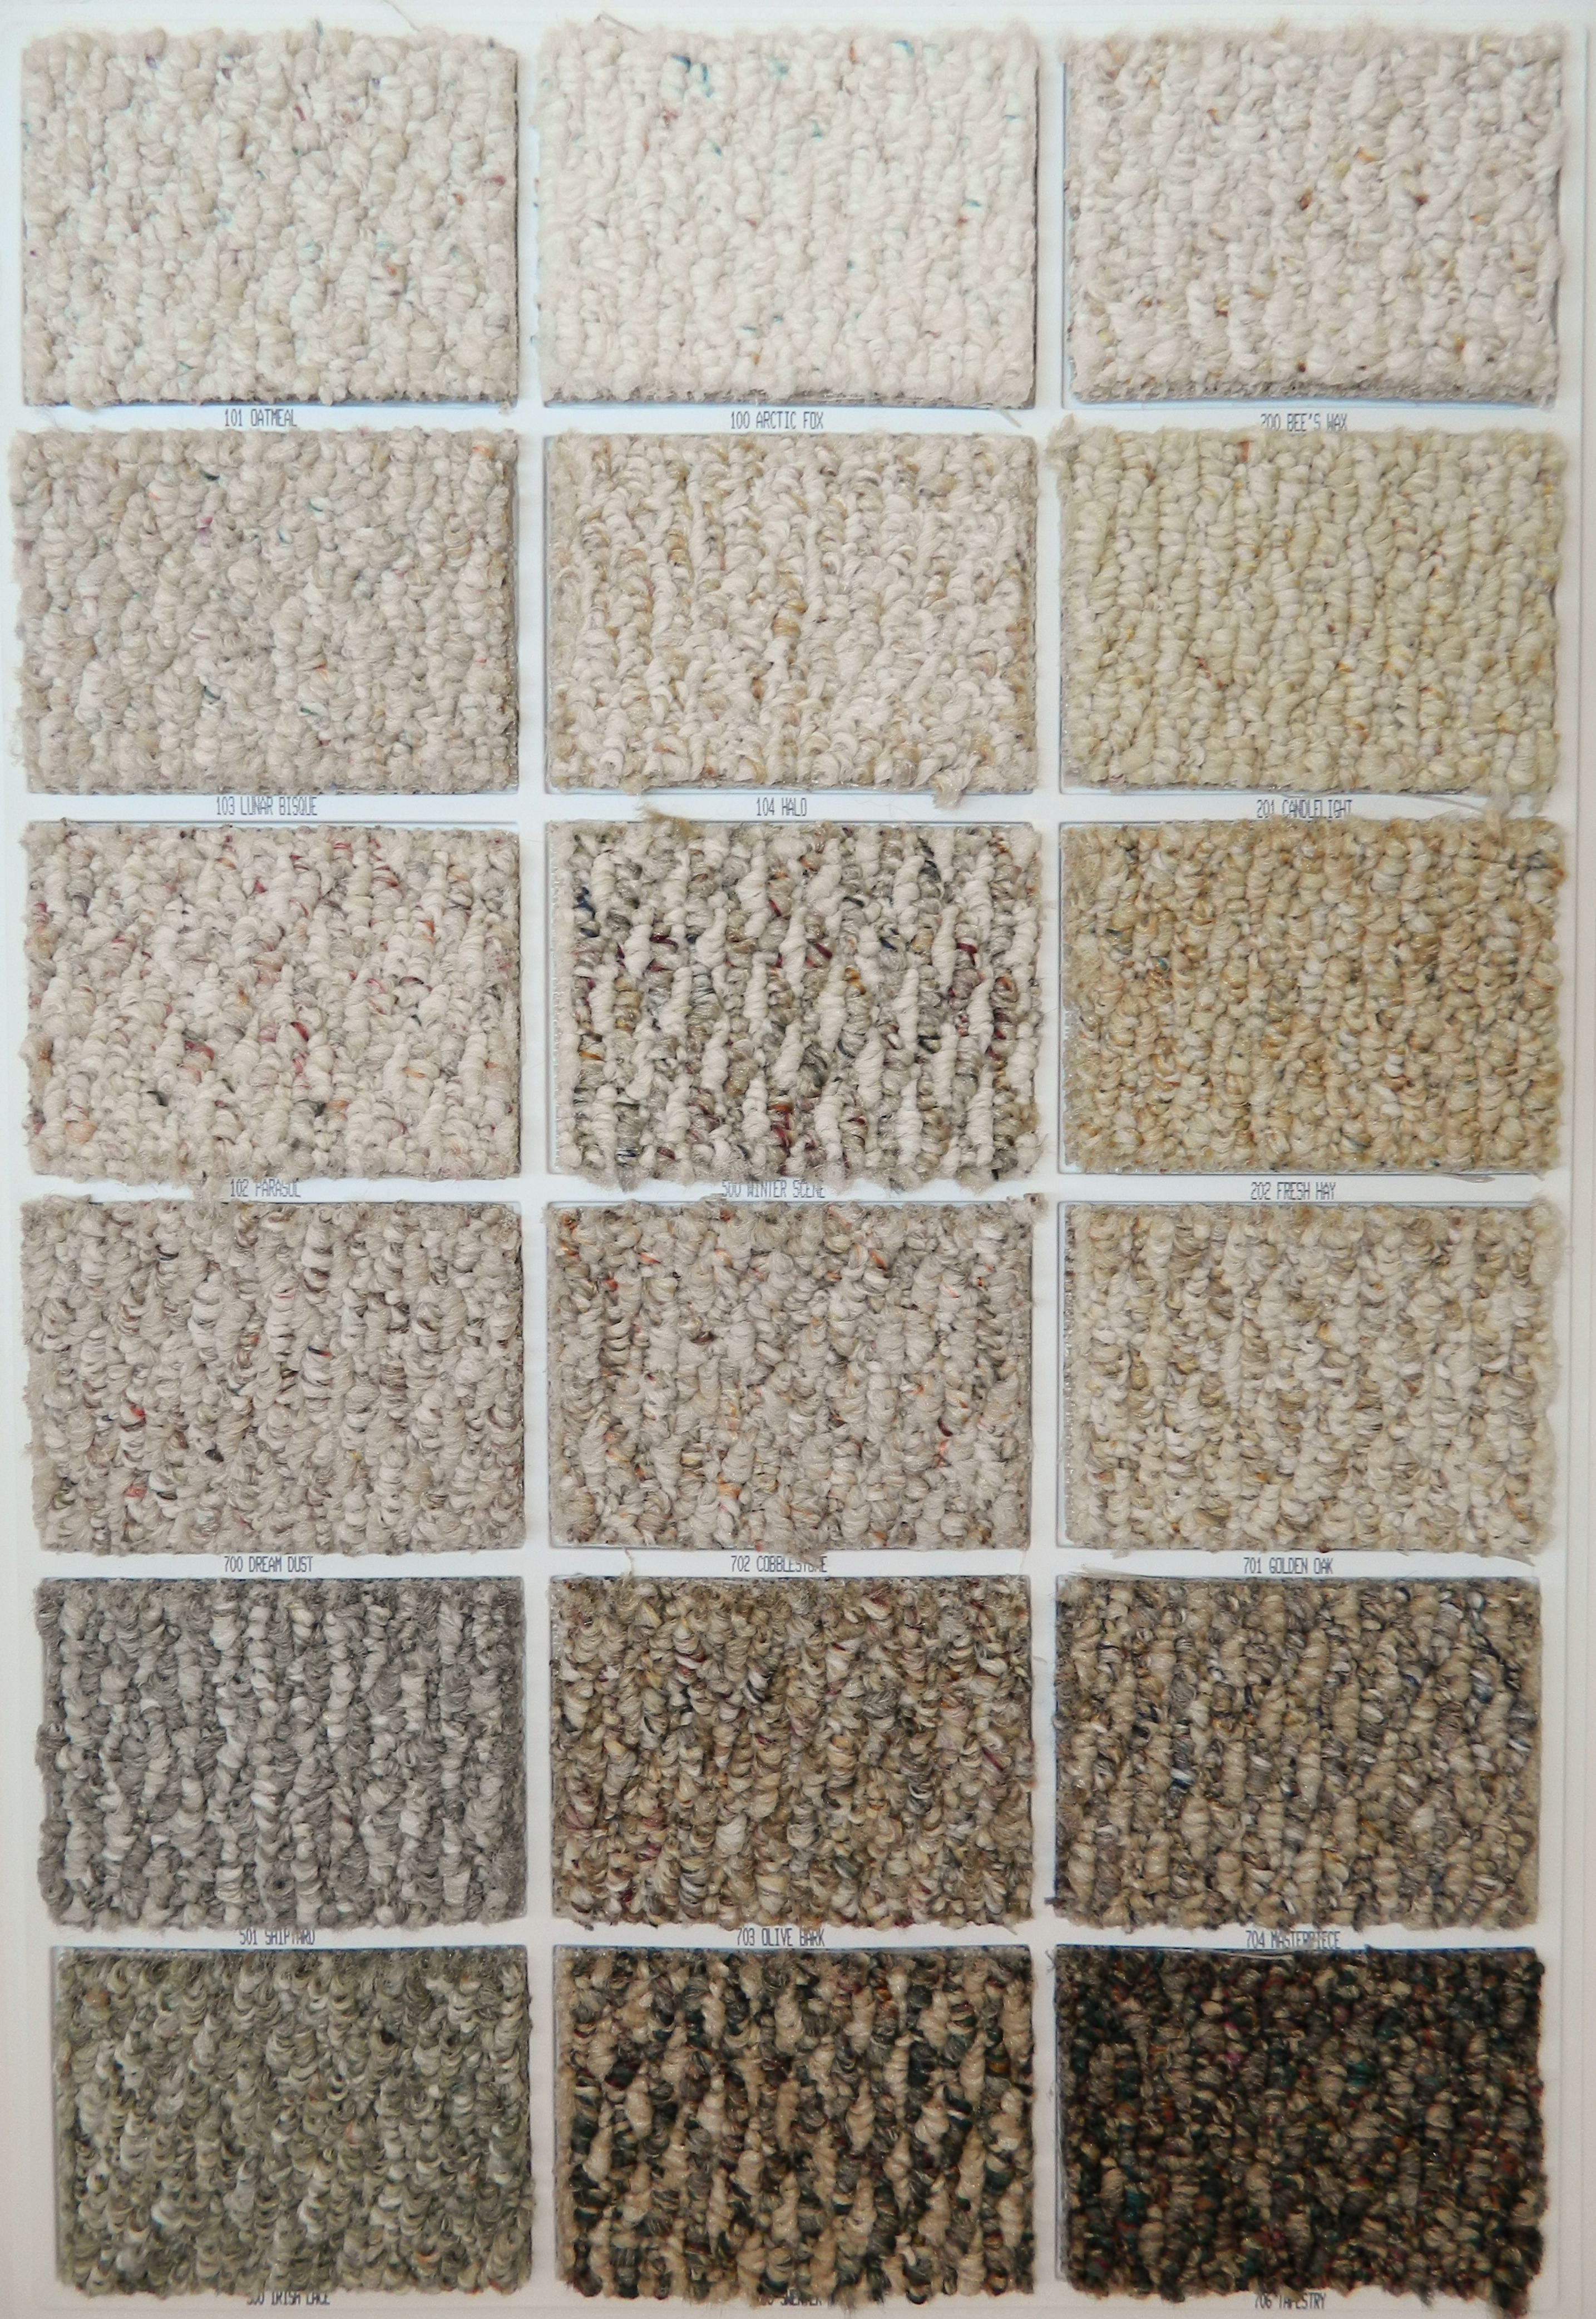 Shaw S Carpet Samples Have Something For Every Taste